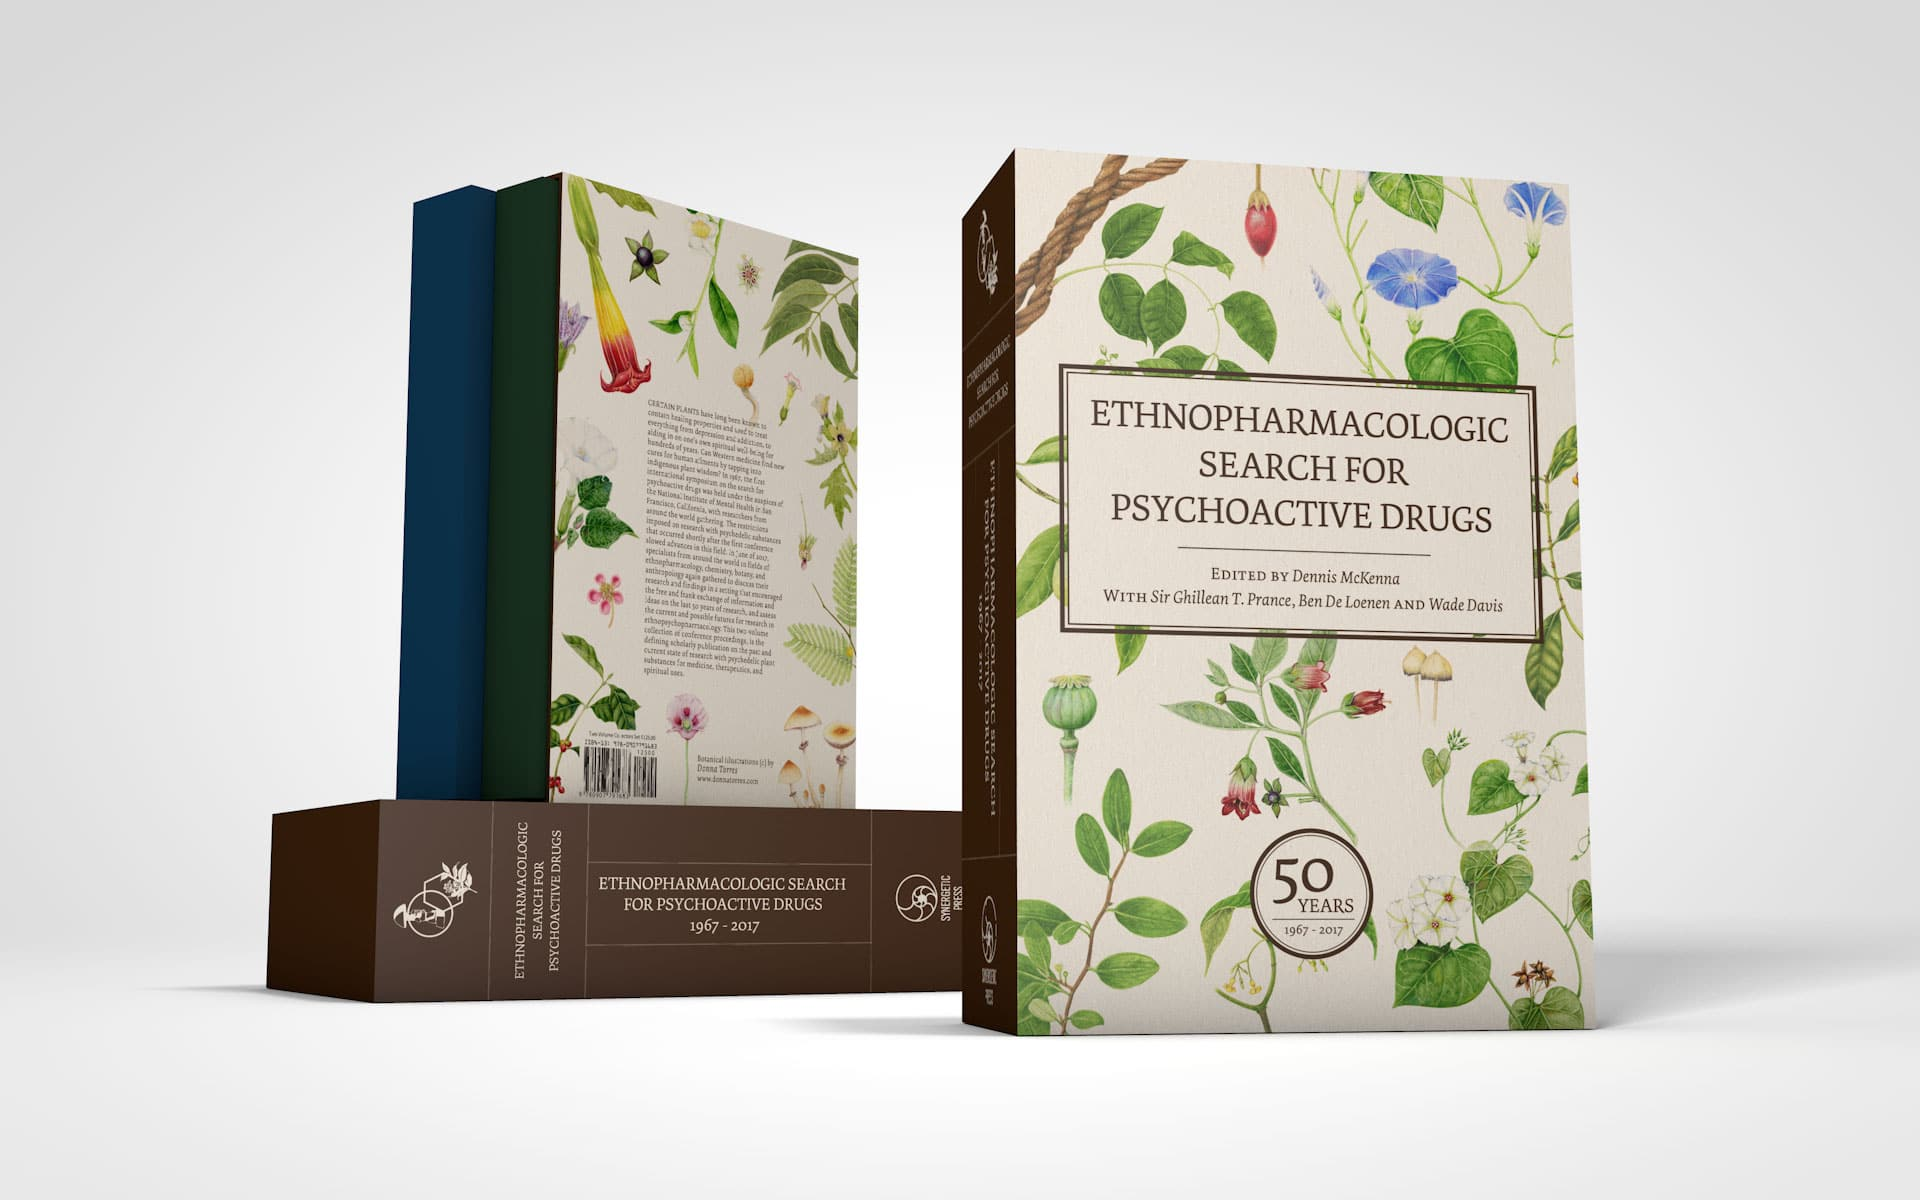 ethnopharmalogic search psychoactive drugs 50 years research